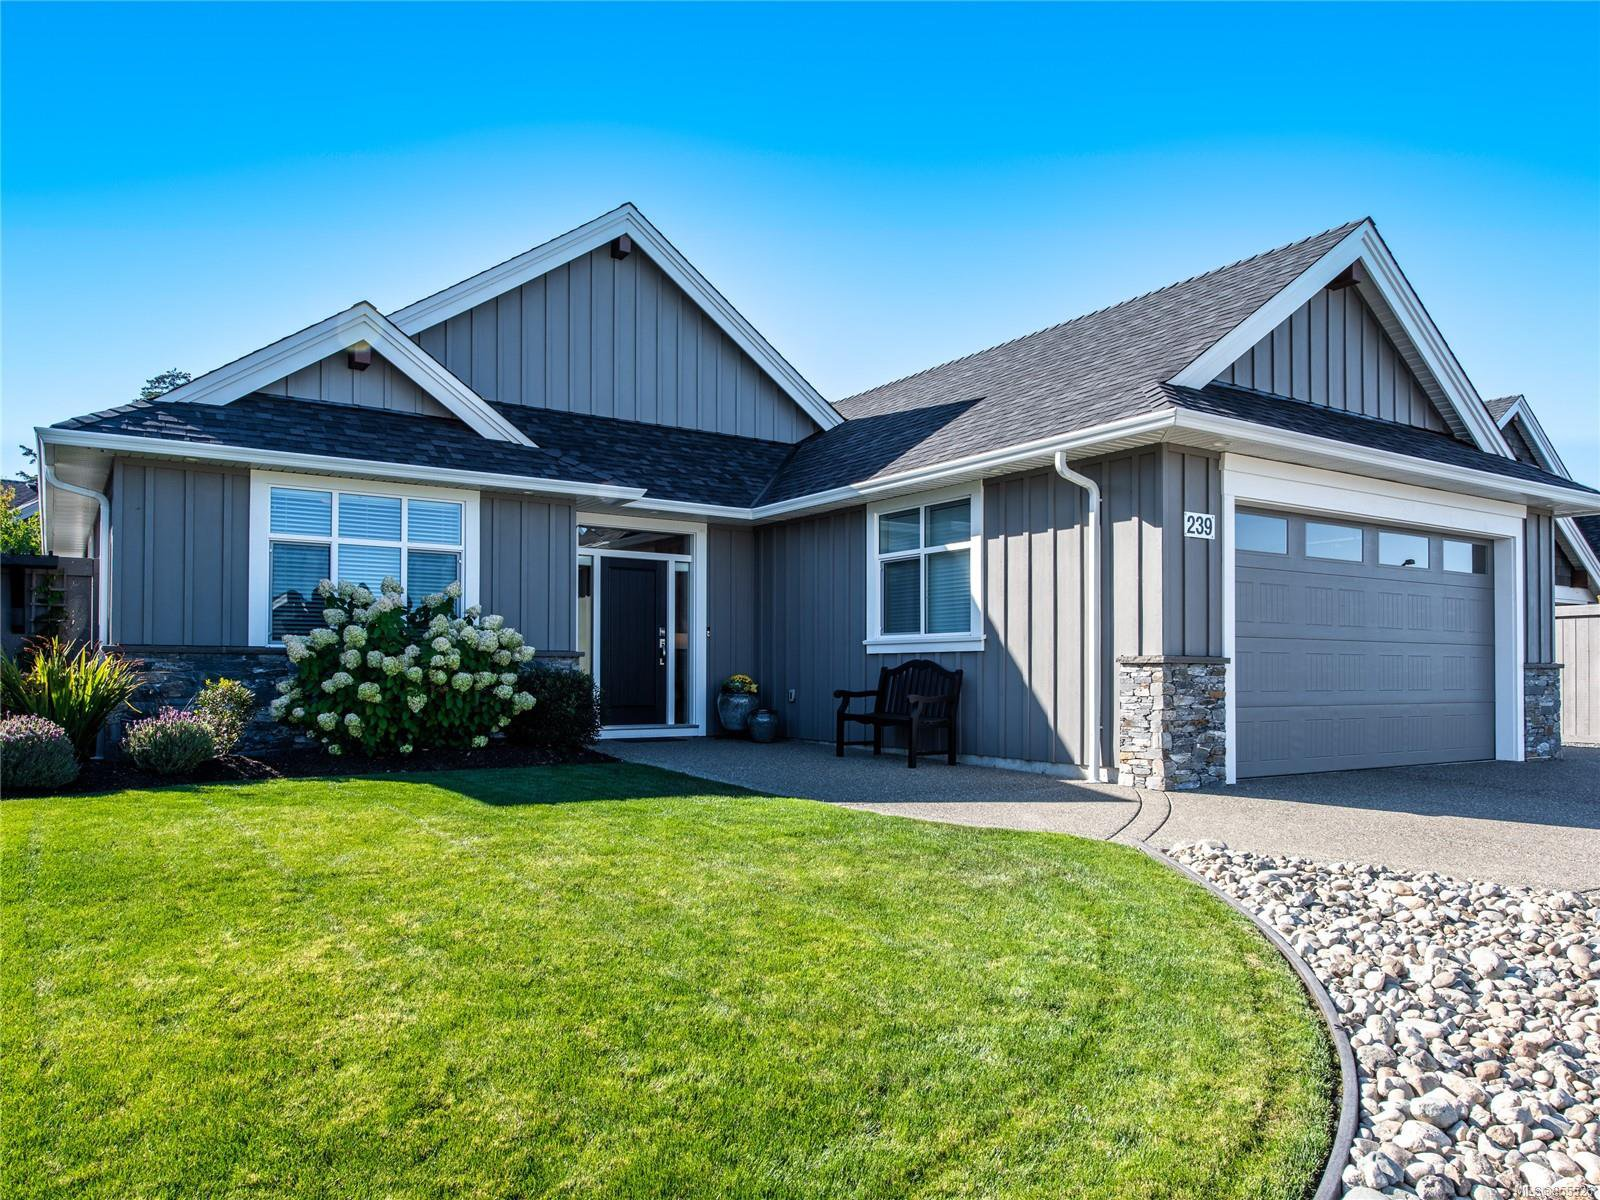 Main Photo: 239 Bramble St in : PQ Parksville House for sale (Parksville/Qualicum)  : MLS®# 855526